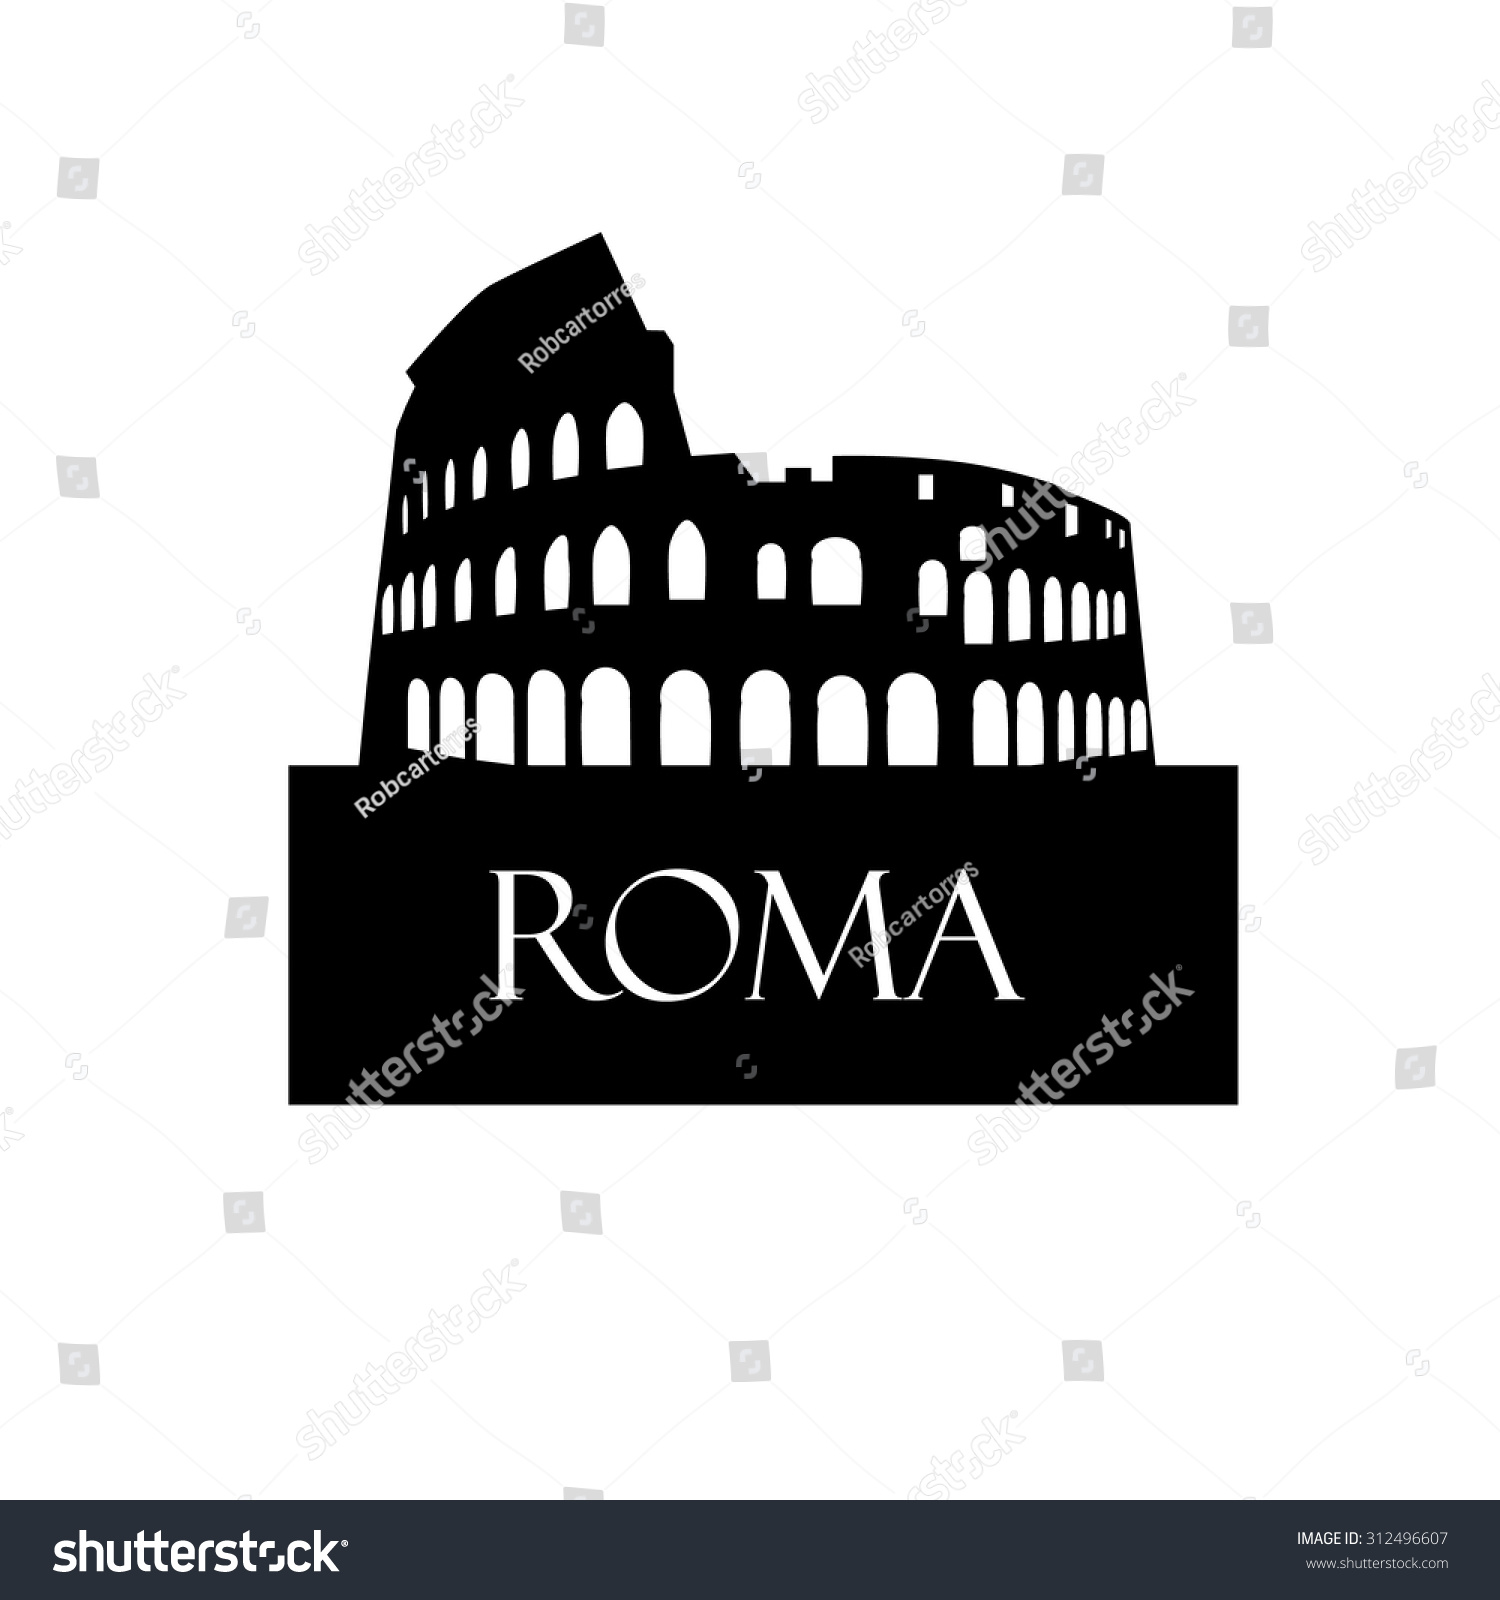 Free Powerpoints - Ancient Rome Overviews